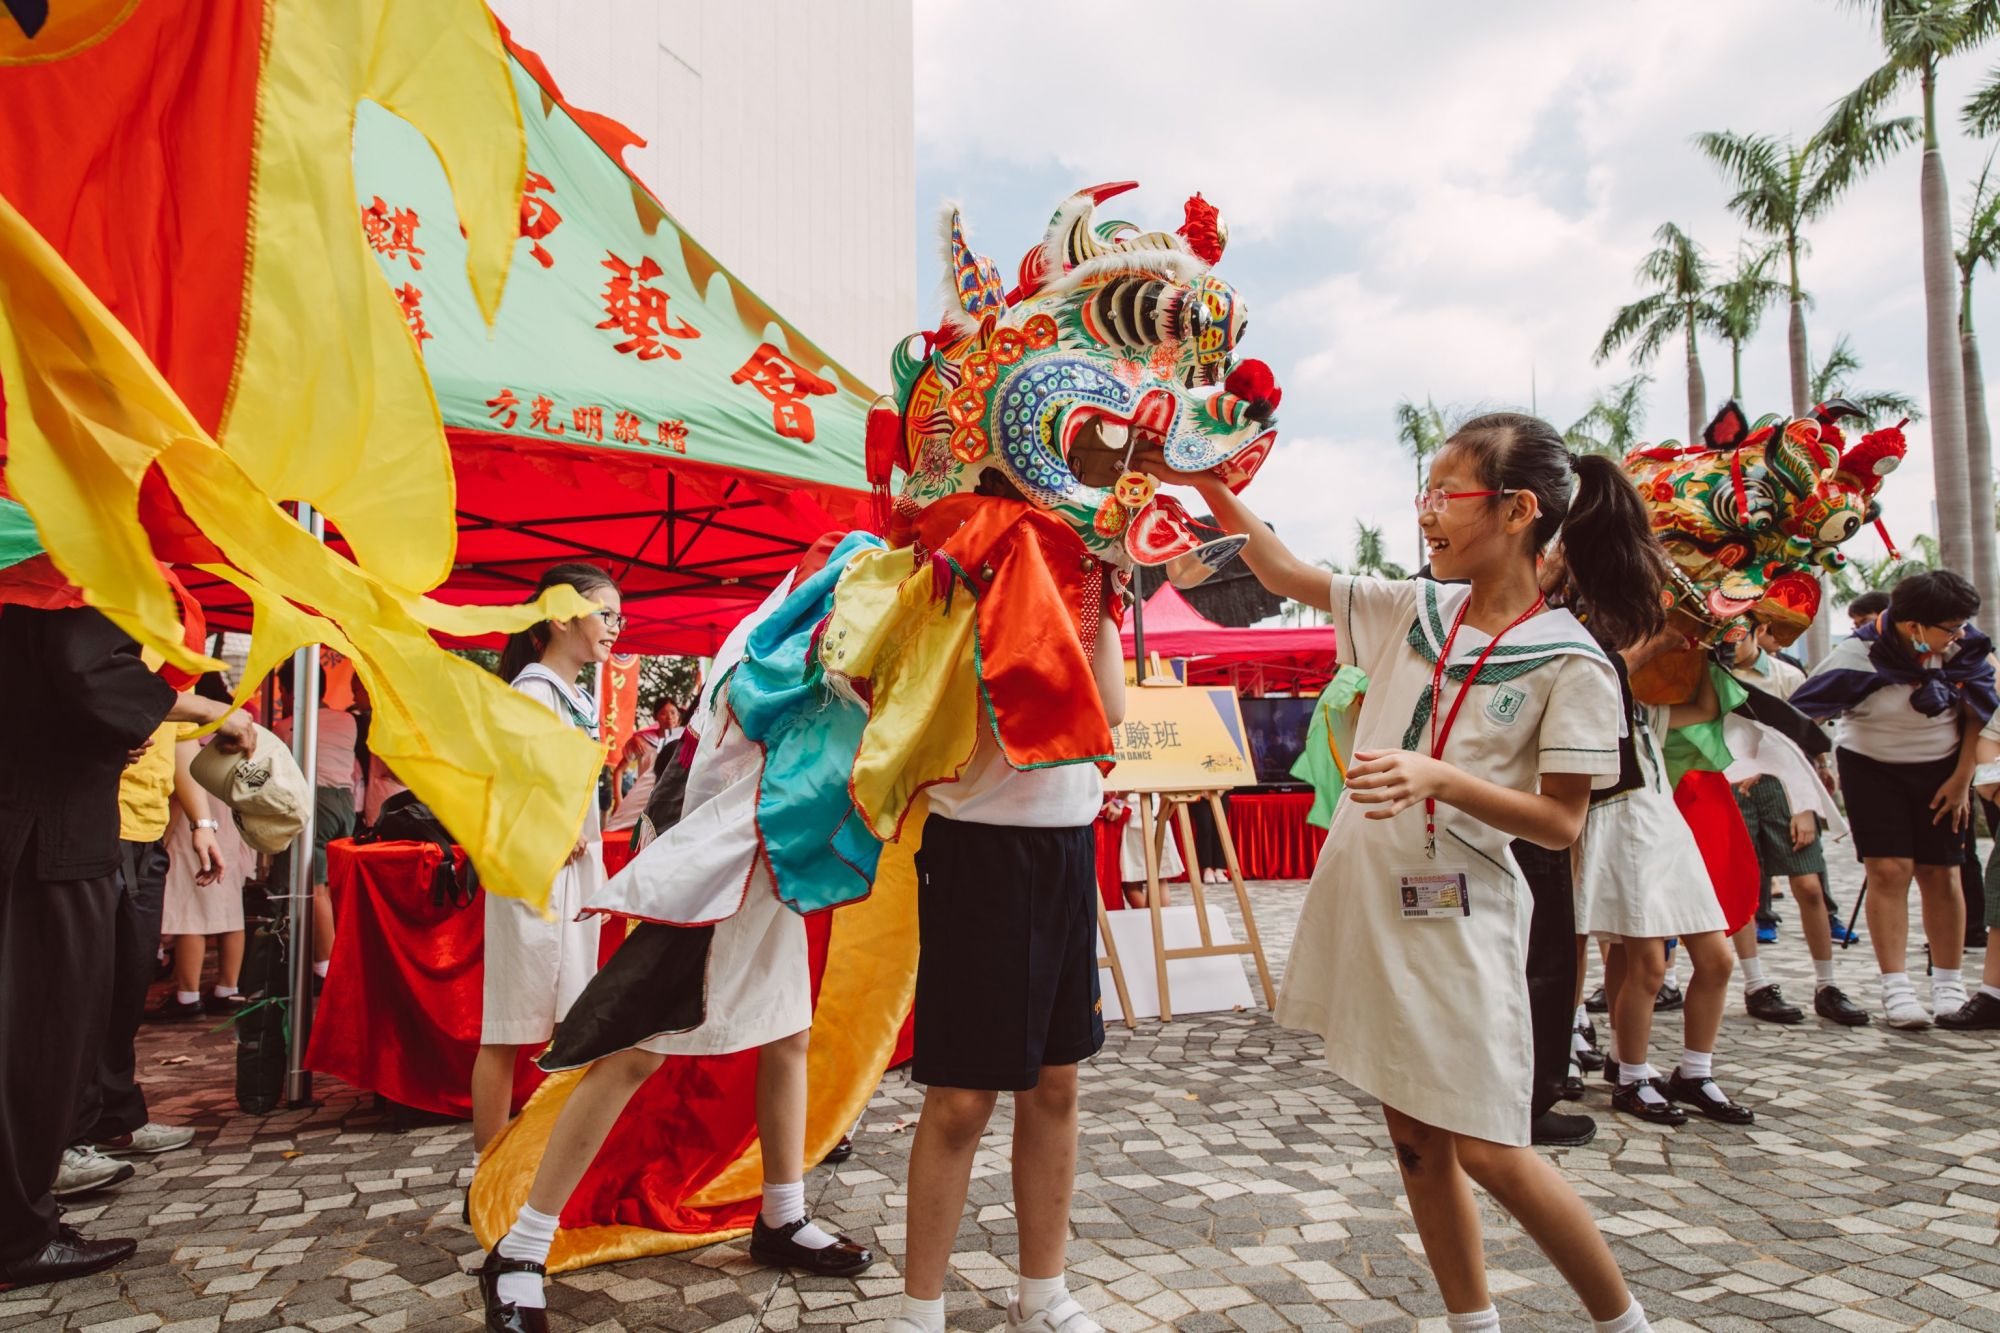 5 Highlights Of The Hong Kong Culture Festival